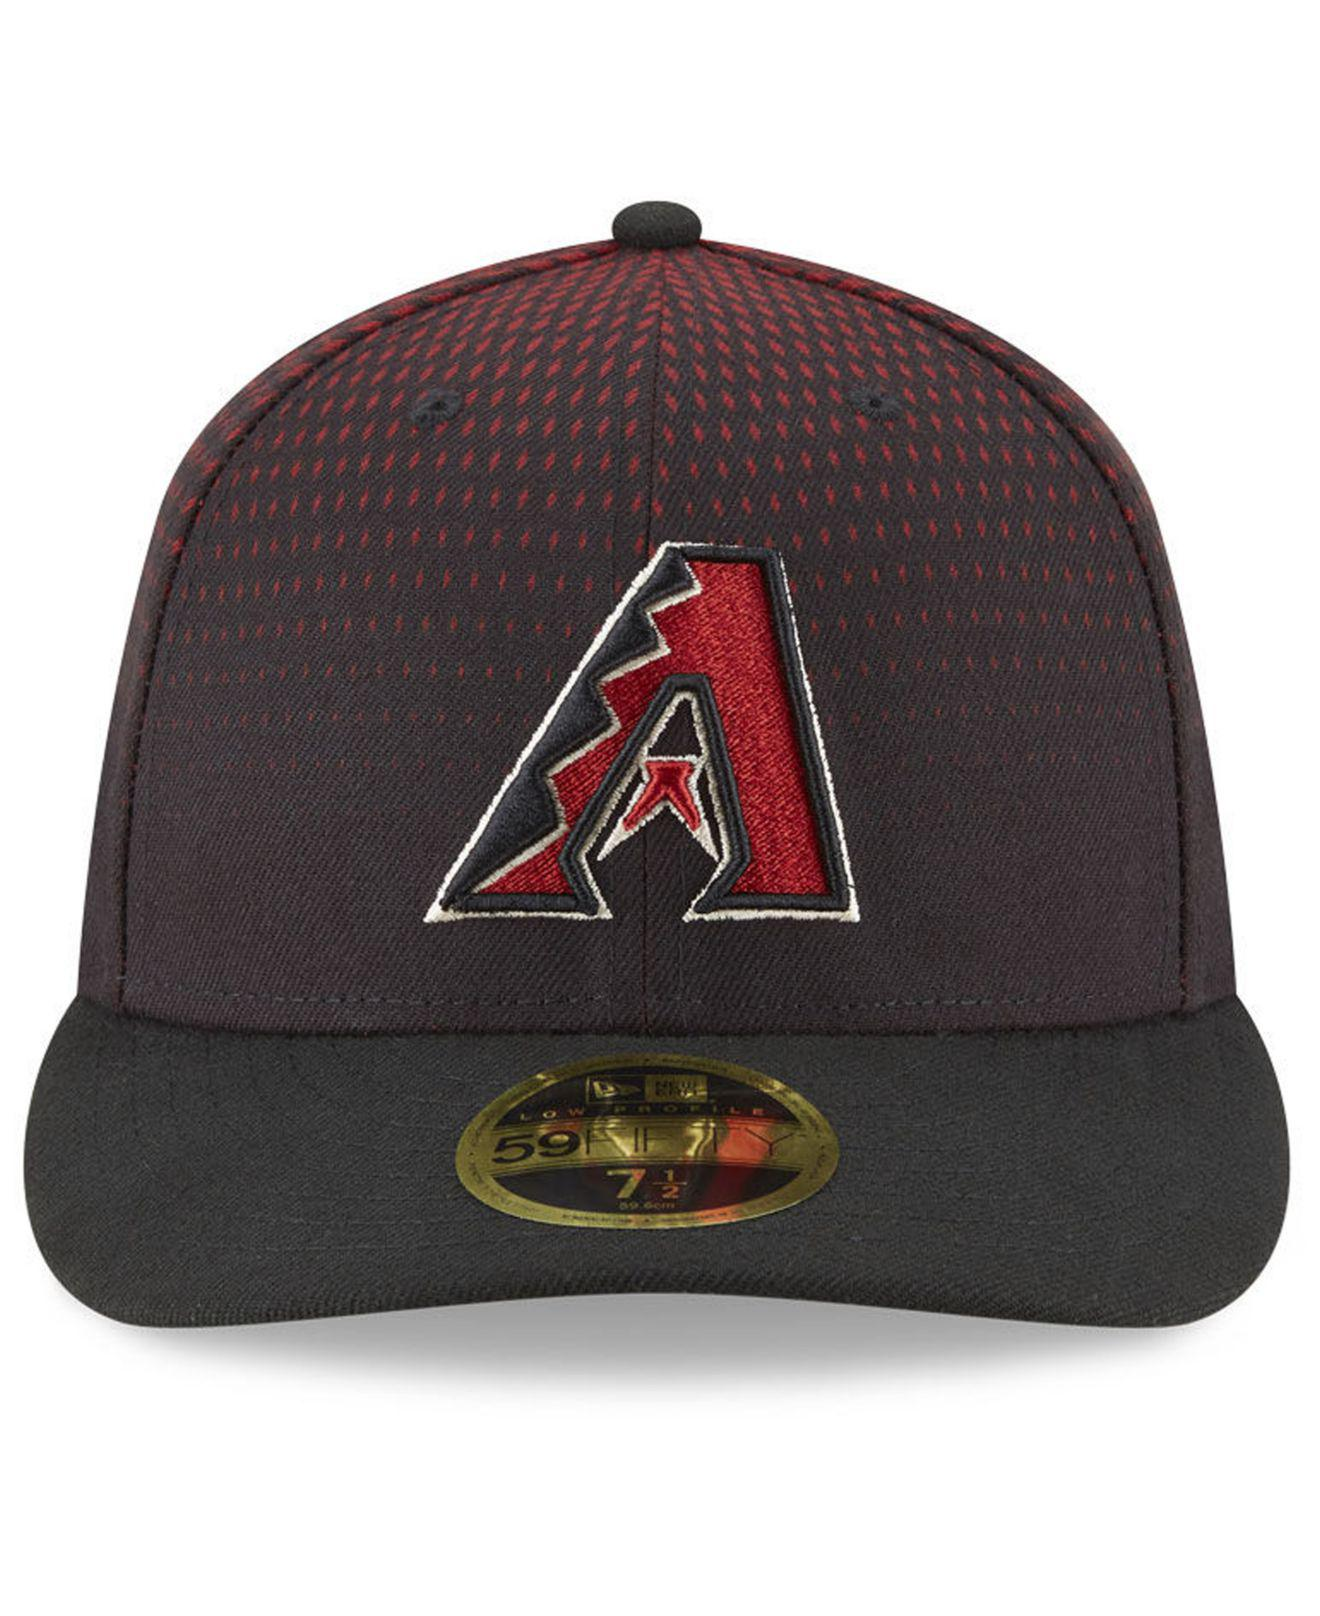 premium selection 67cf7 91781 Lyst - KTZ Arizona Diamondbacks 9-11 Memorial Low Profile 59fifty Fitted Cap  in Black for Men